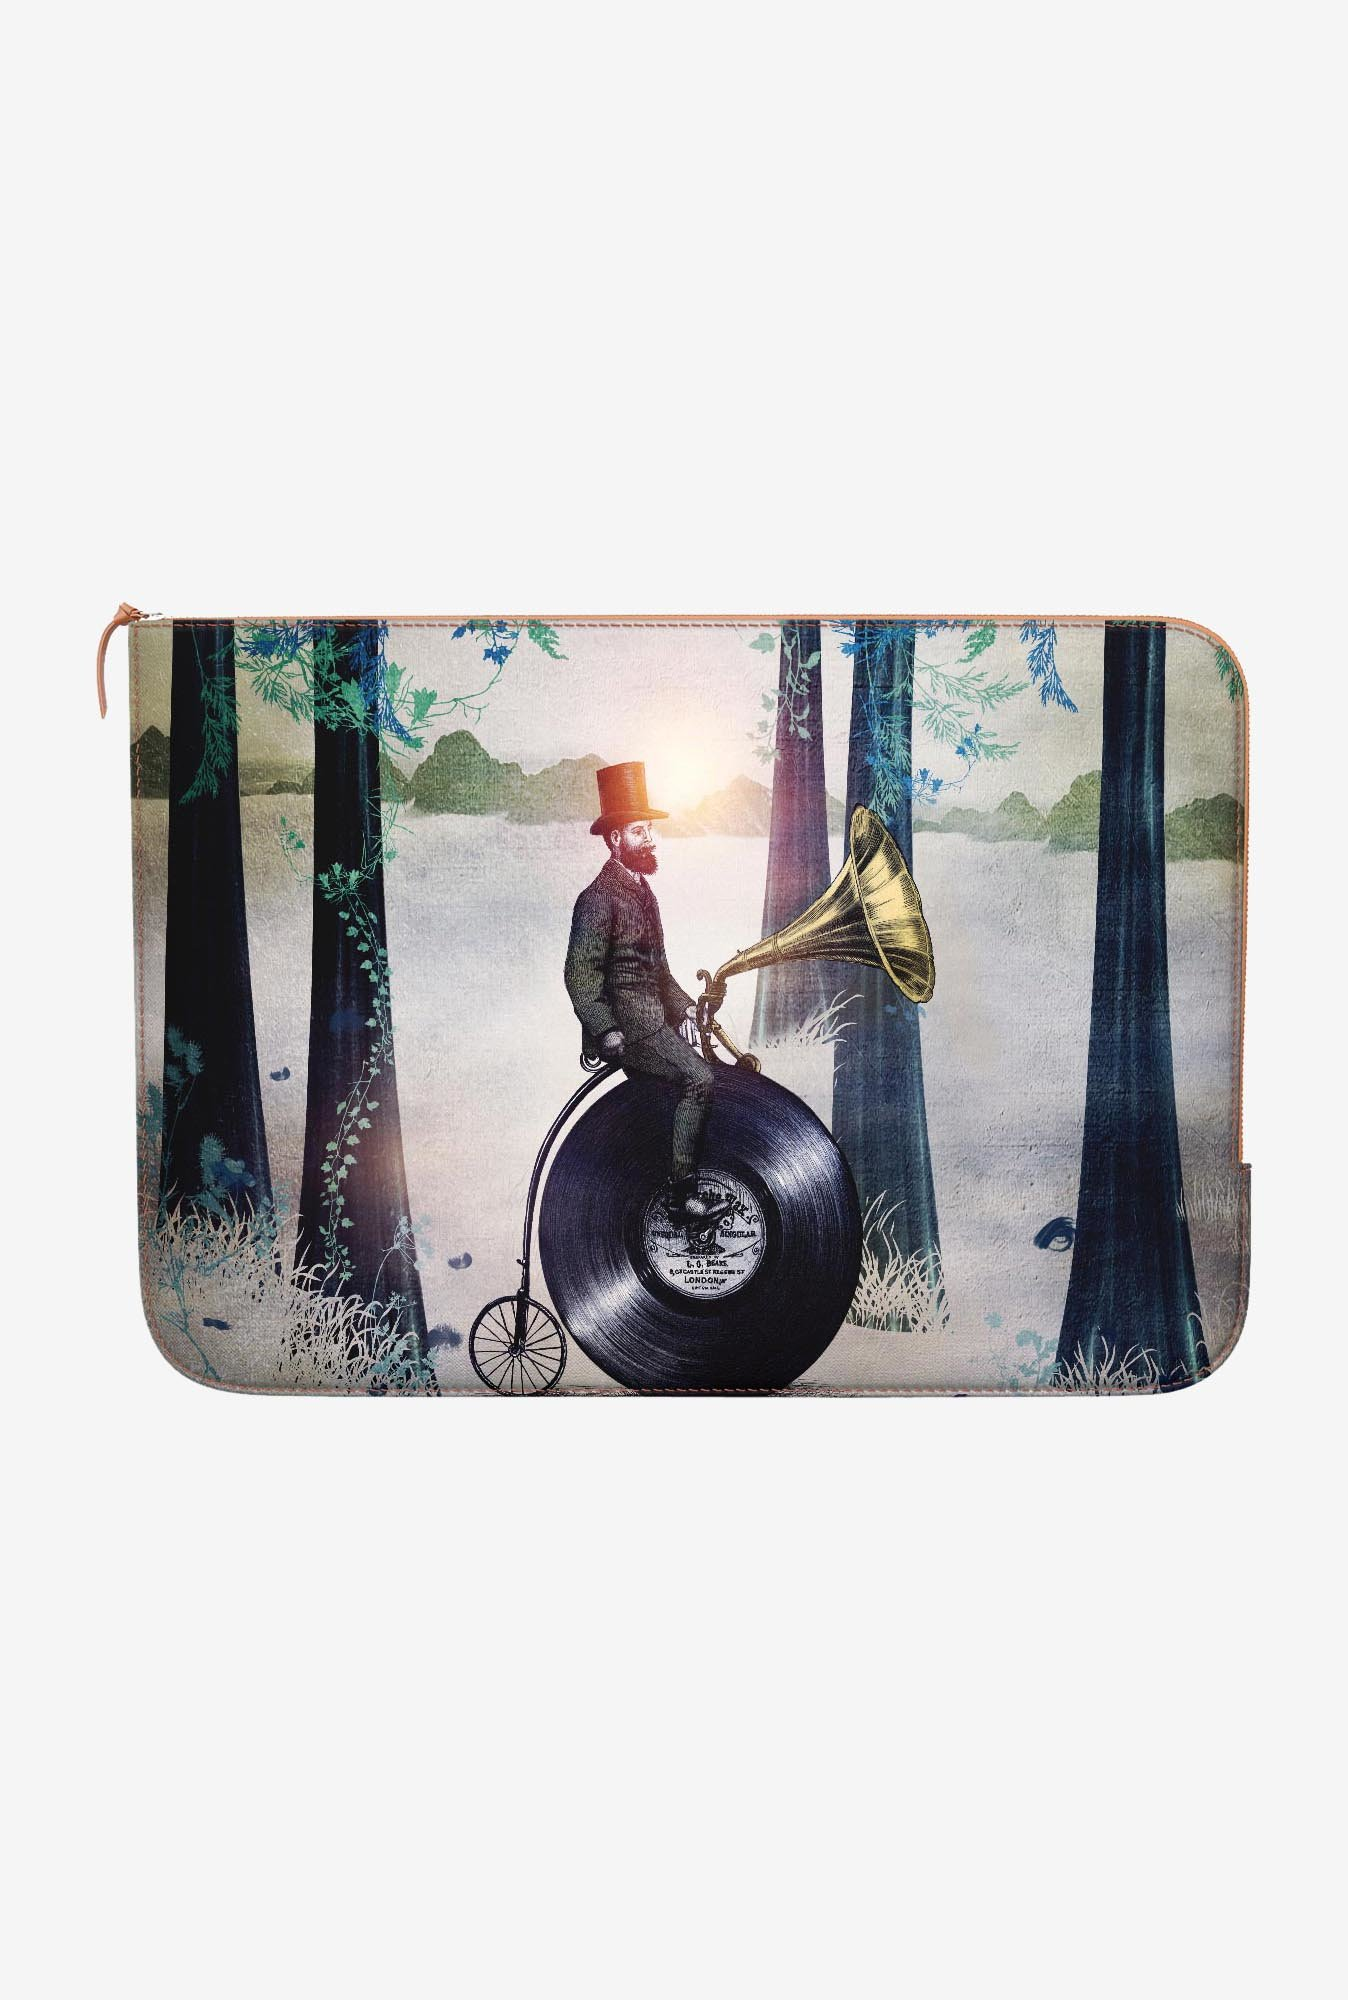 DailyObjects Man In Forest MacBook Pro 15 Zippered Sleeve